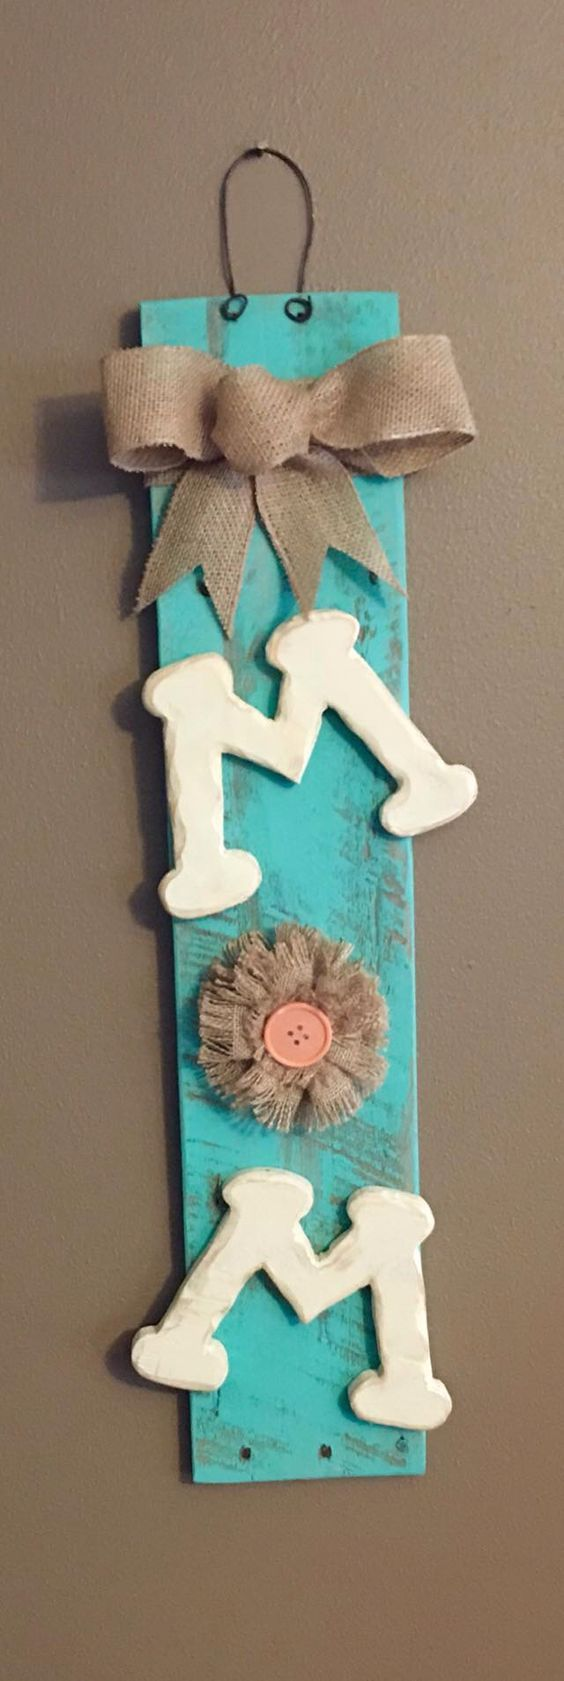 Wooden Pallet Sign   DIY Mothers Day Gift Ideas from Daughter...